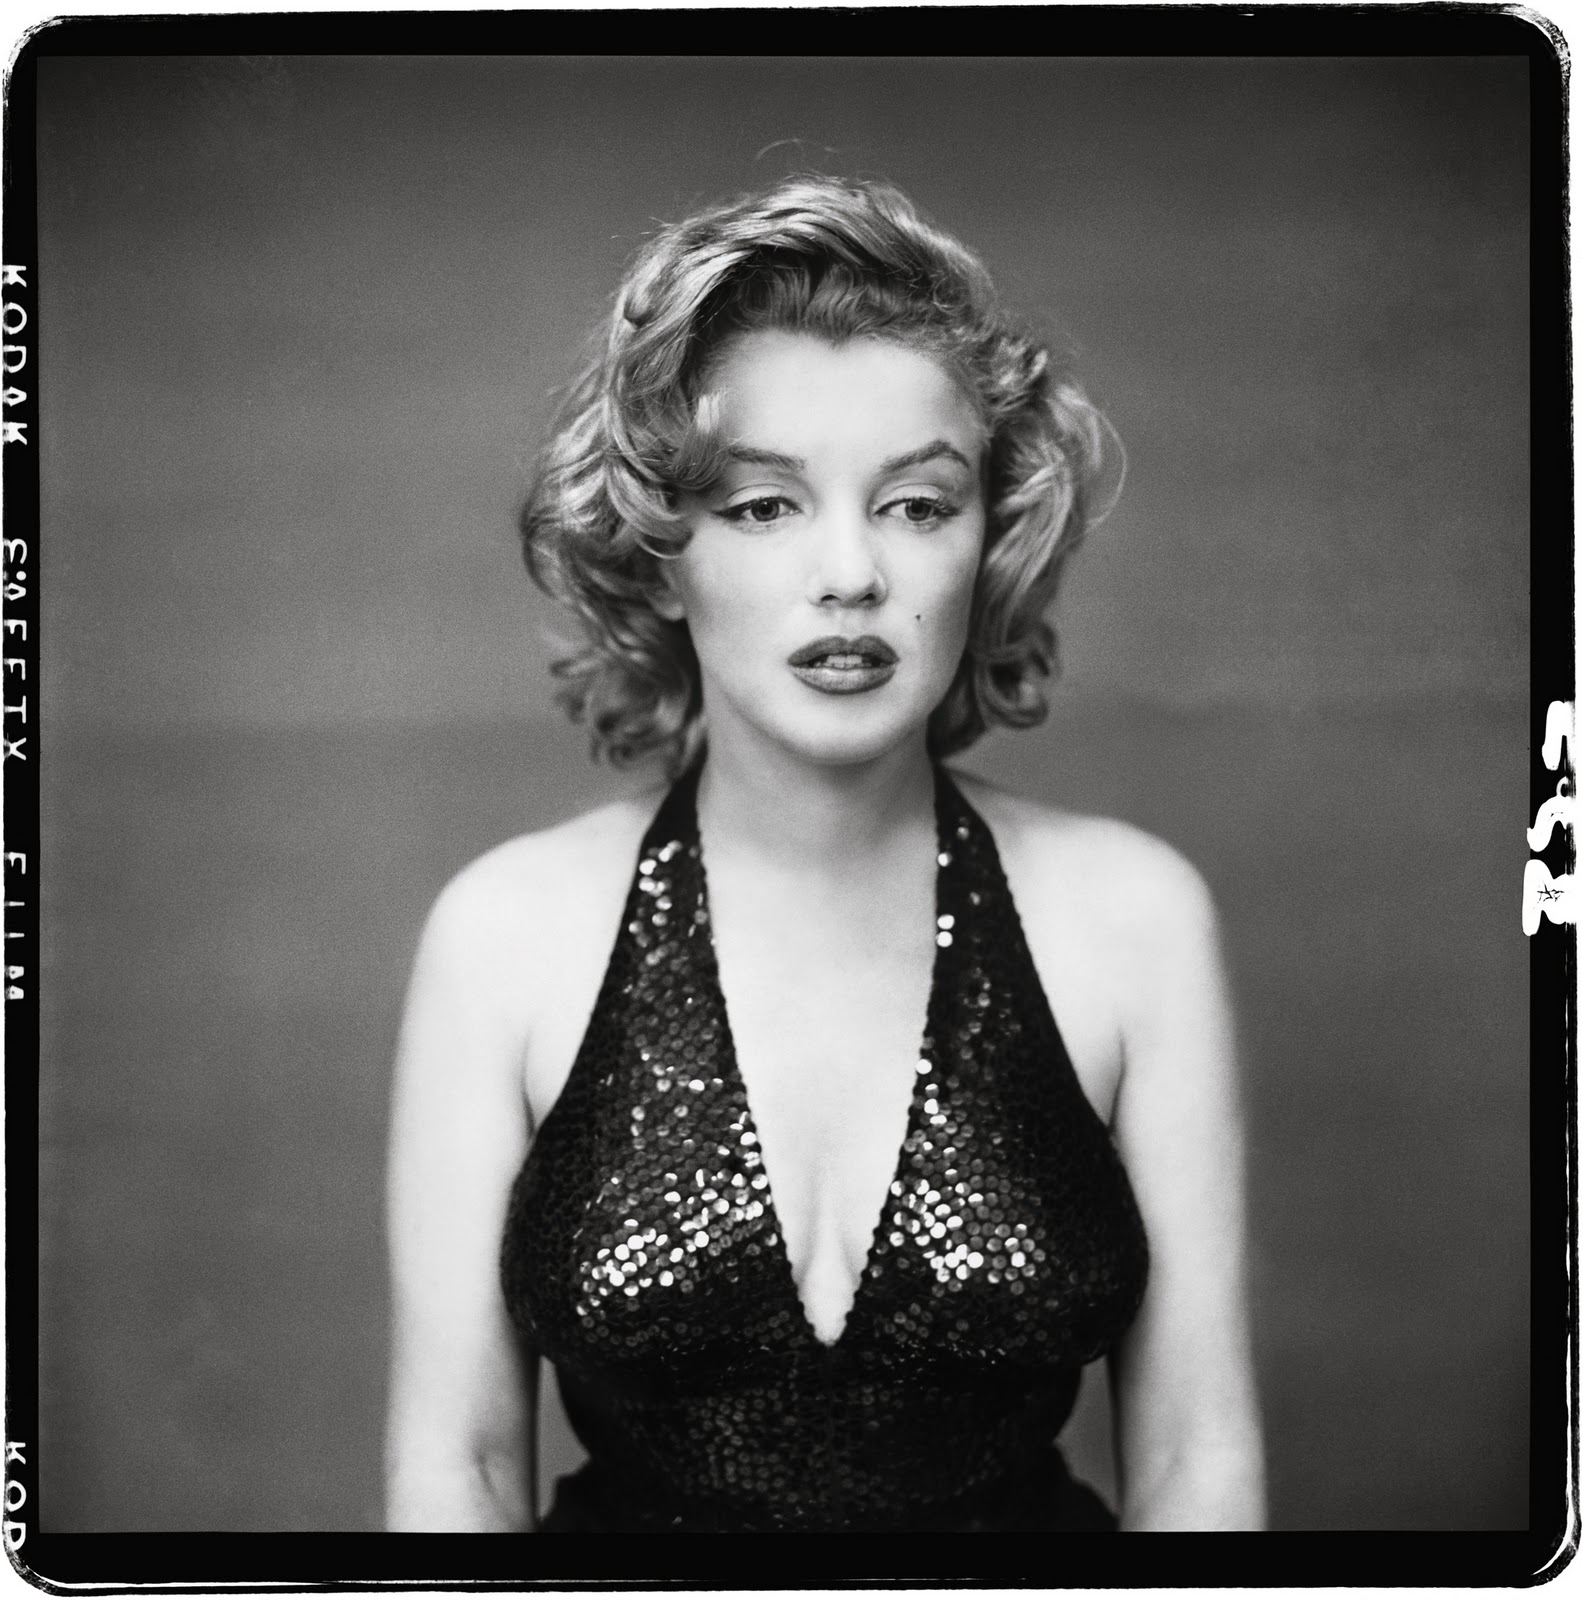 http://1.bp.blogspot.com/_OAh4Xl94vrU/TKNL3AUbIiI/AAAAAAAAYGI/fz10q3sjXiI/s1600/Marilyn+Monroe,+actor,+New+York,+May+6,+1957.jpg